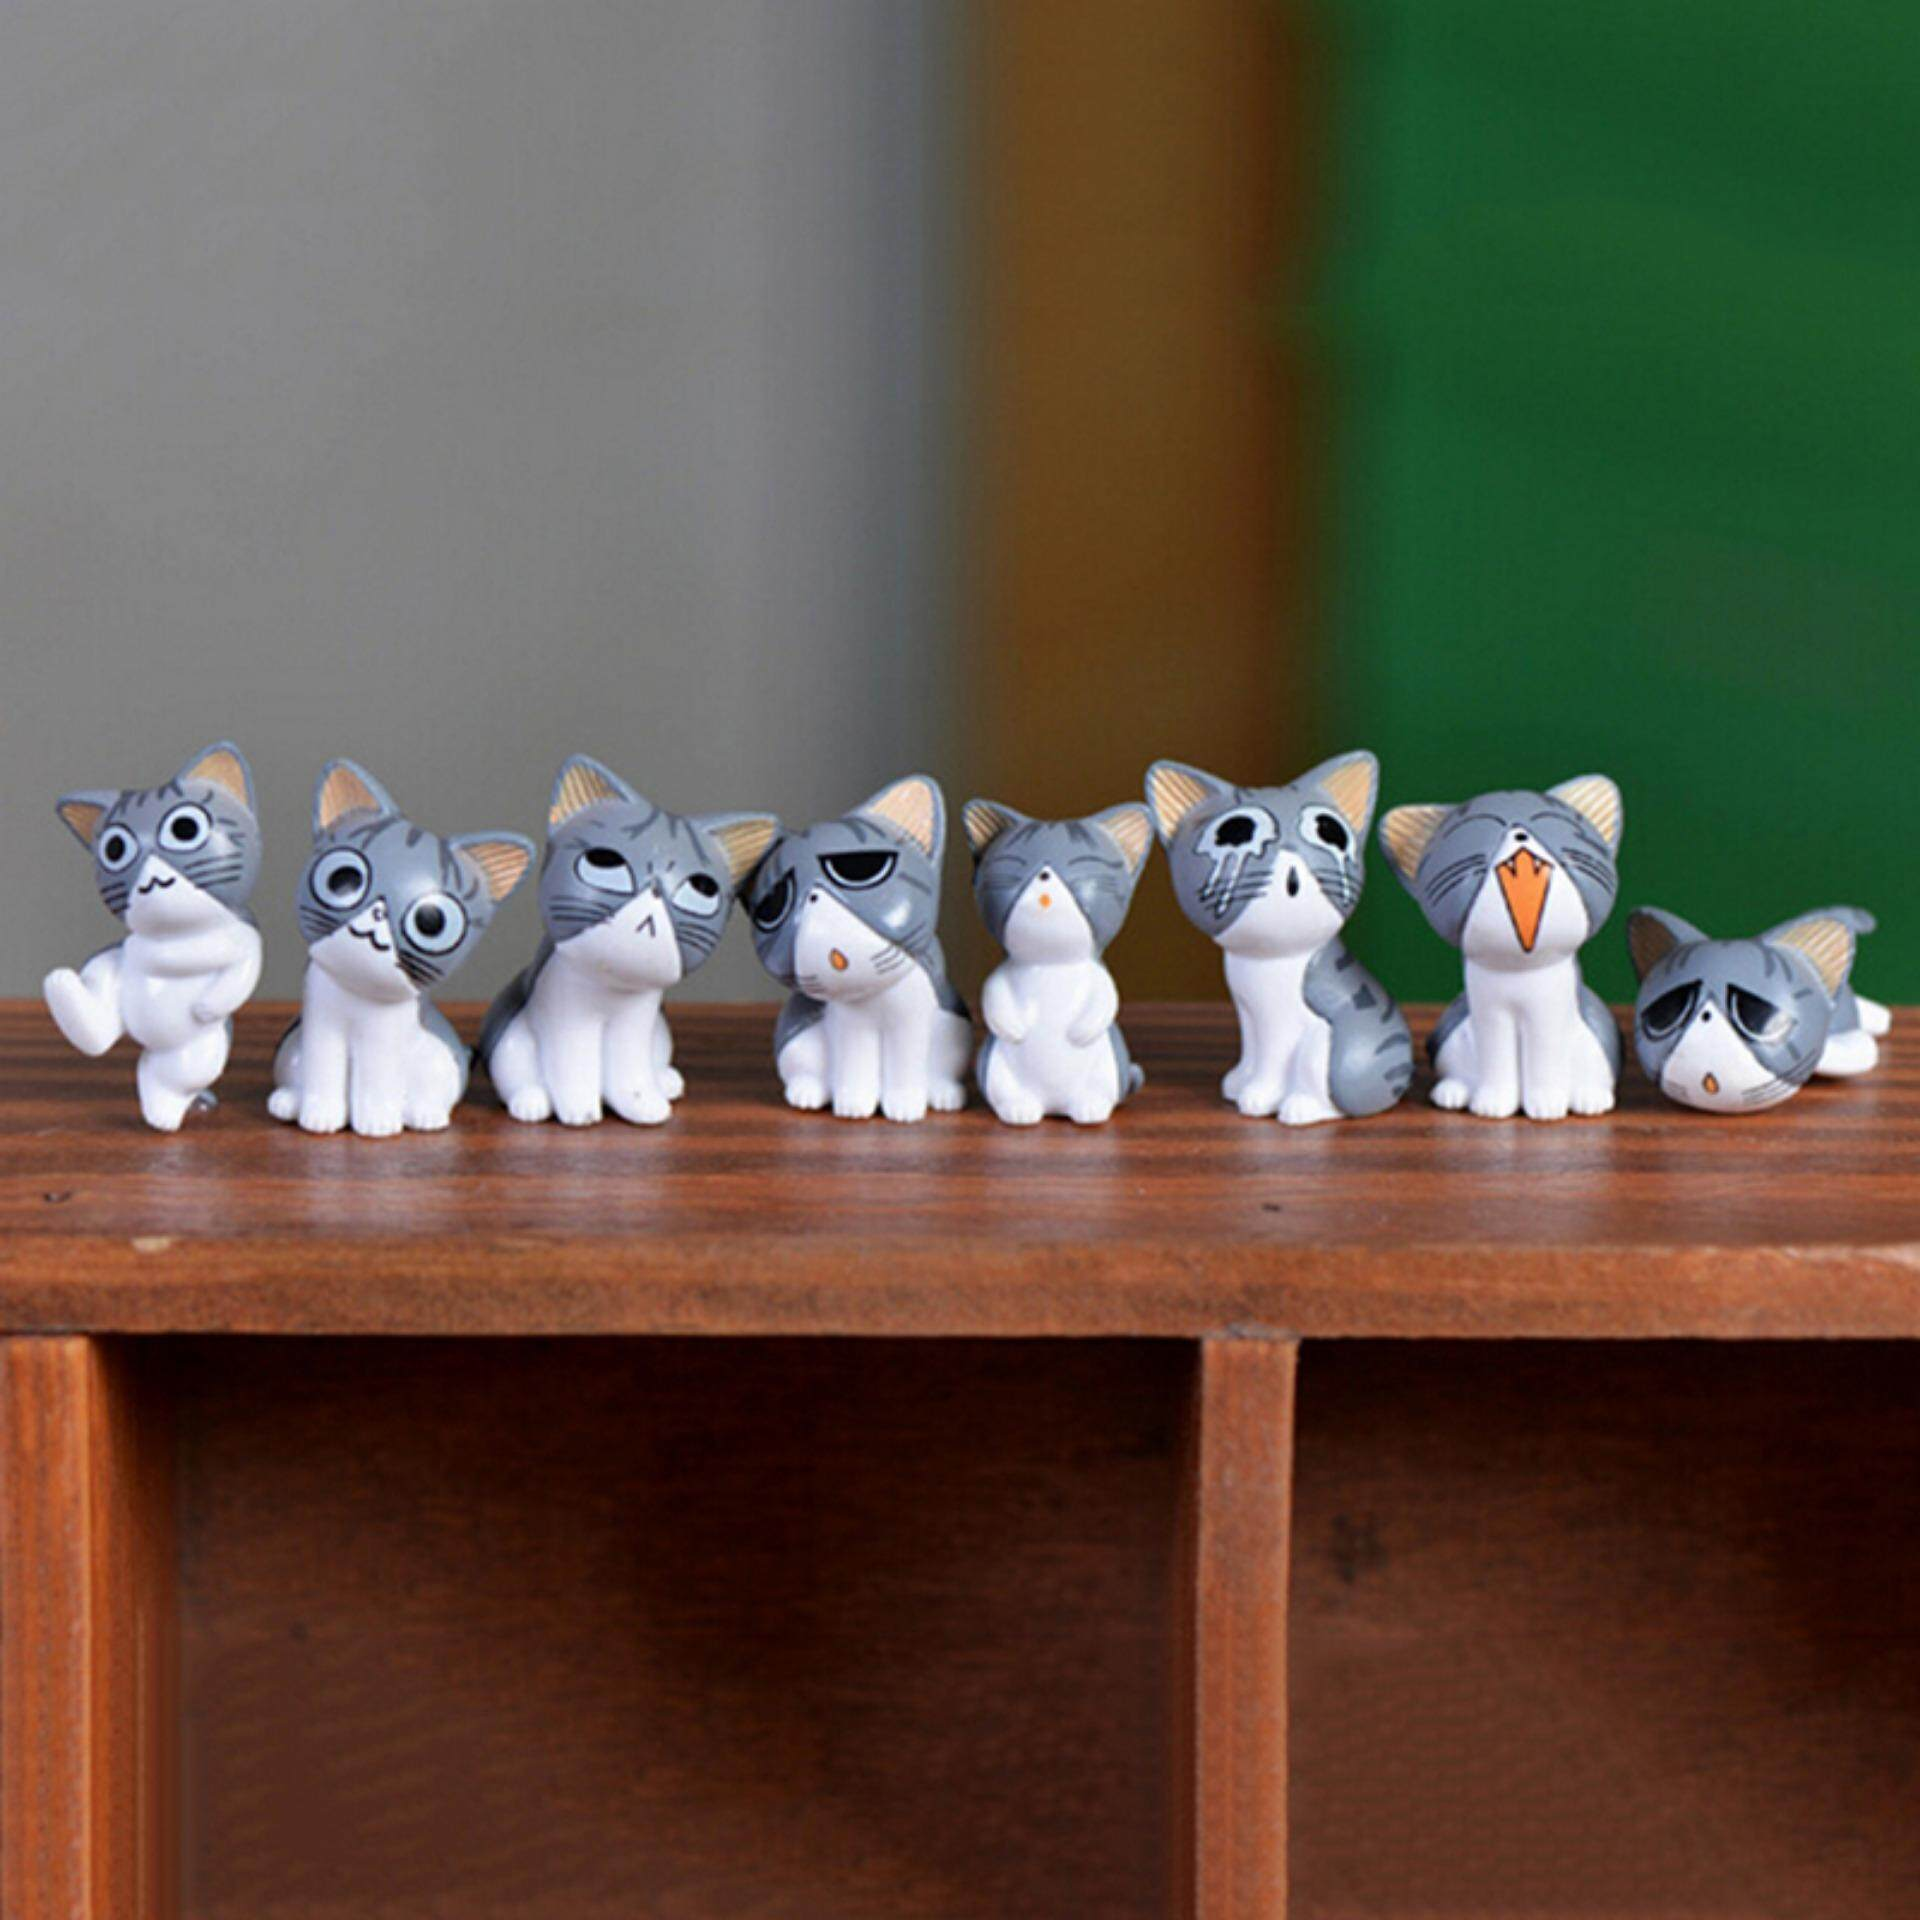 8 Pcs Kawaii Cheese Cats Kitty Statue Miniatures Resin Kitten Cat Figurines Mini Garden Figures Decoration For Home Kids Toys - Intl.